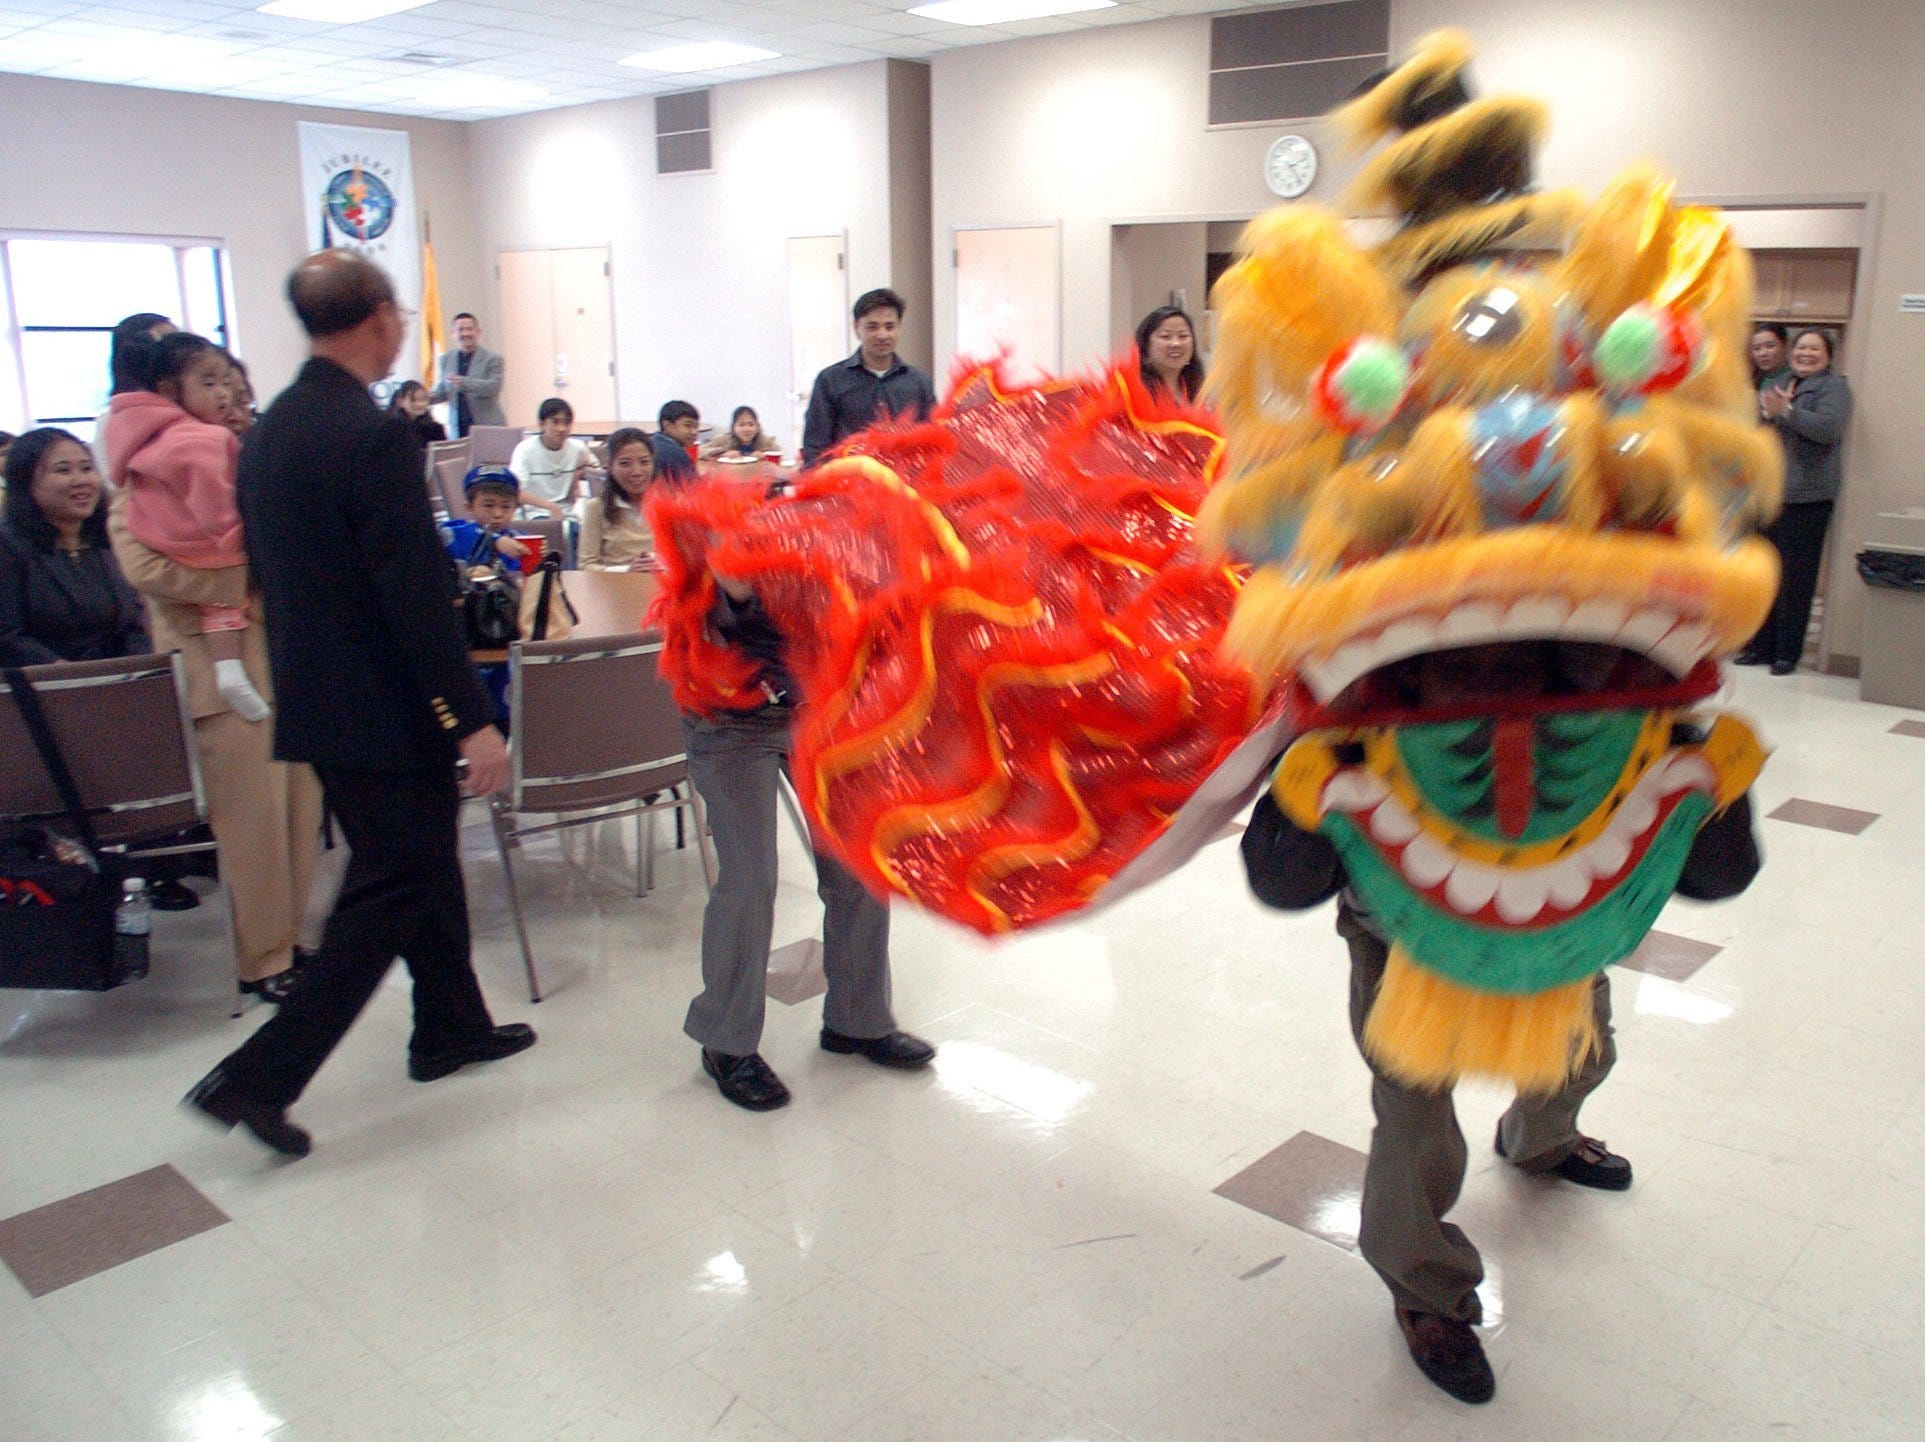 As part of a celebtration of Chinese New year, Elton Nguyen (right), 11, plays a drum as Luong Nguyen (front) and Thomas Le perform a traditional dragon dance at a reception following a mass at the St. Therese Catholic Church in Jackson for members of the Vietnamese community.